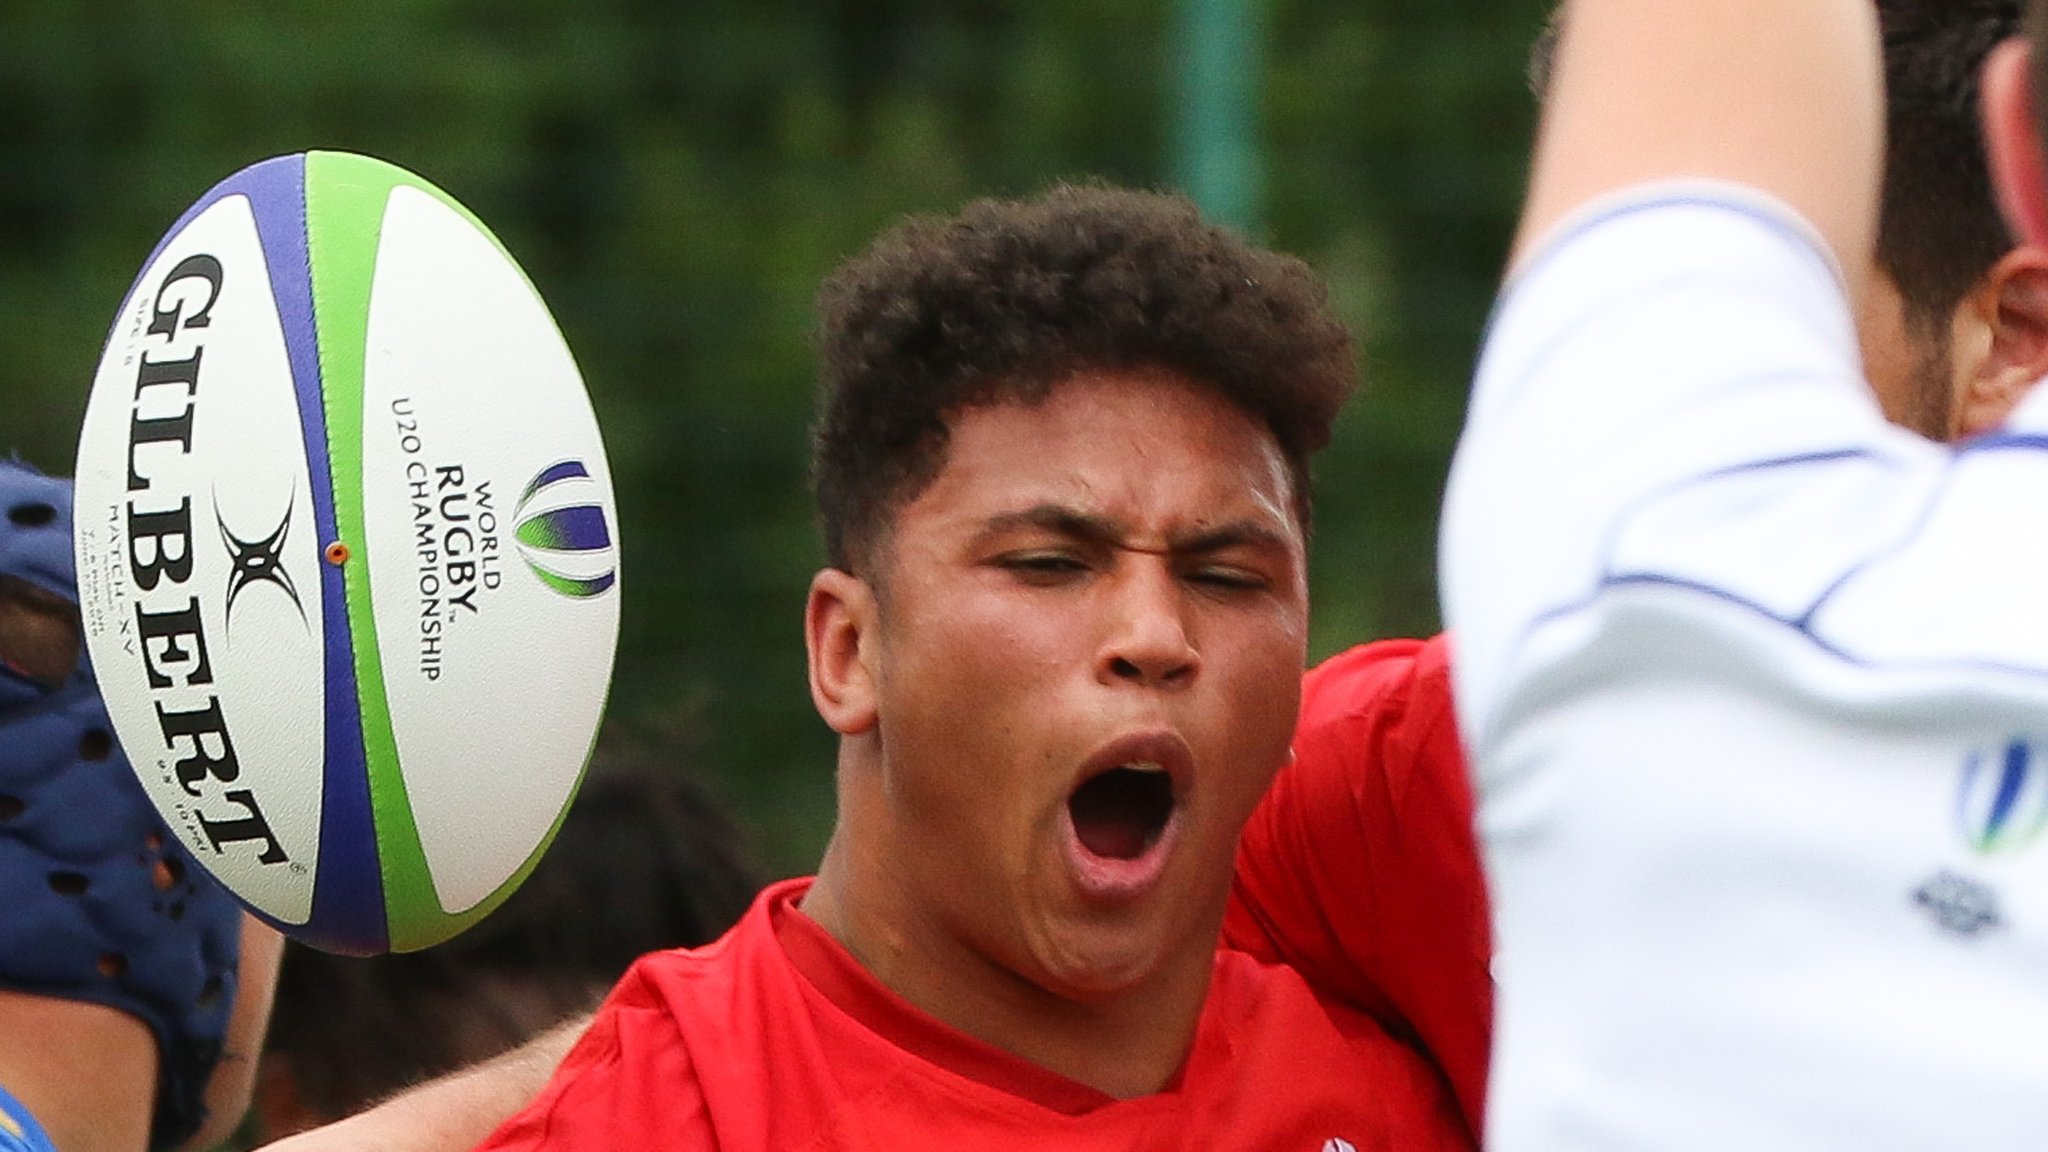 Wales beat Italy to take seventh at World U20s